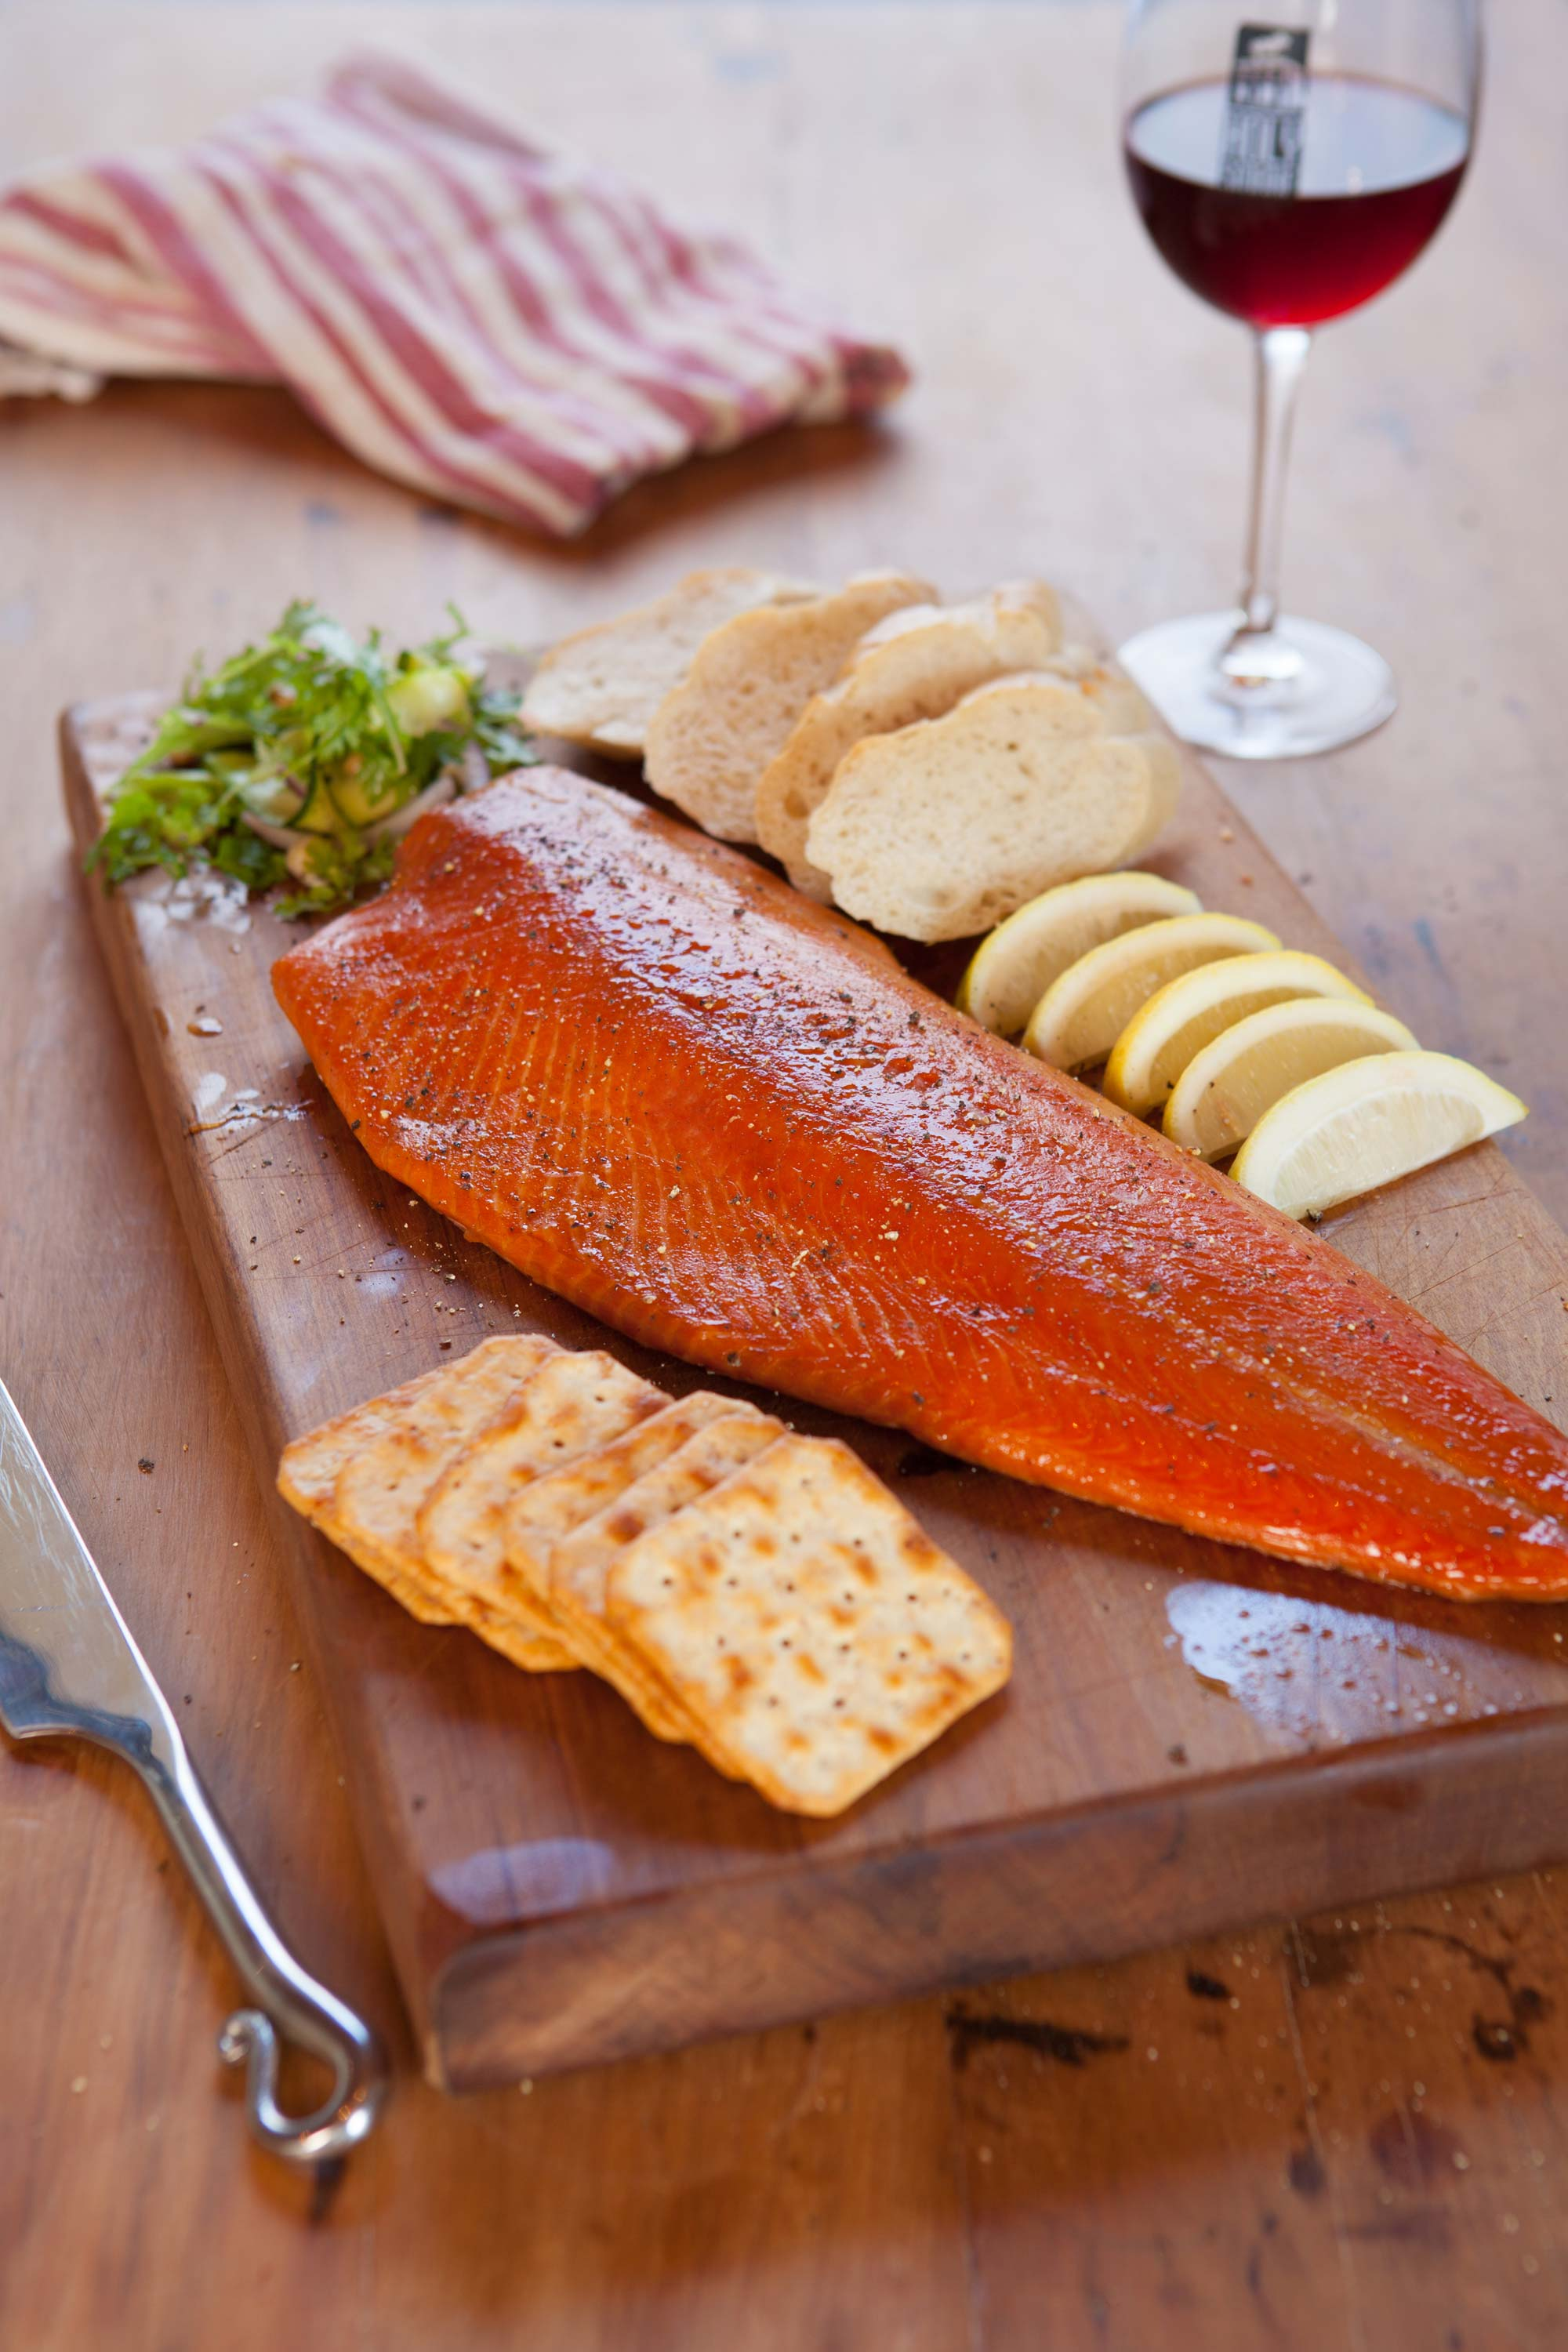 Smoked Salmon Side with Crackers